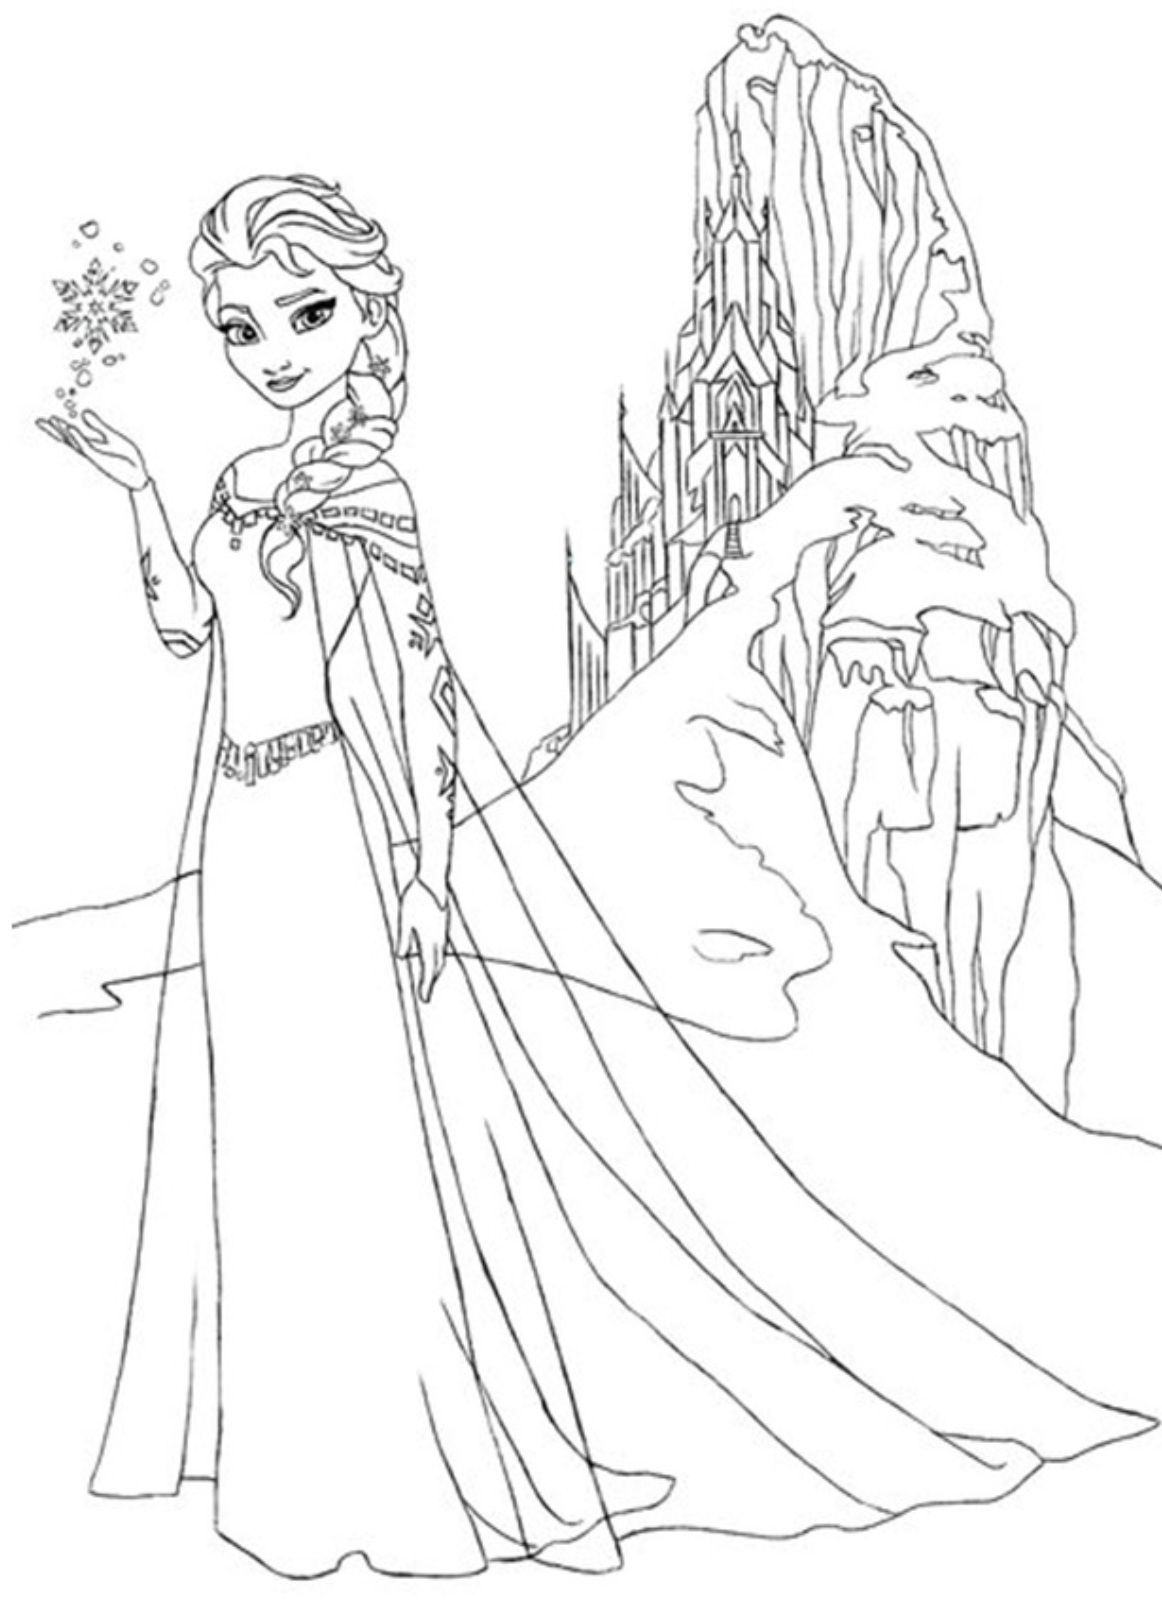 Download And Print Frozen Coloring Page Kifestők Coloring